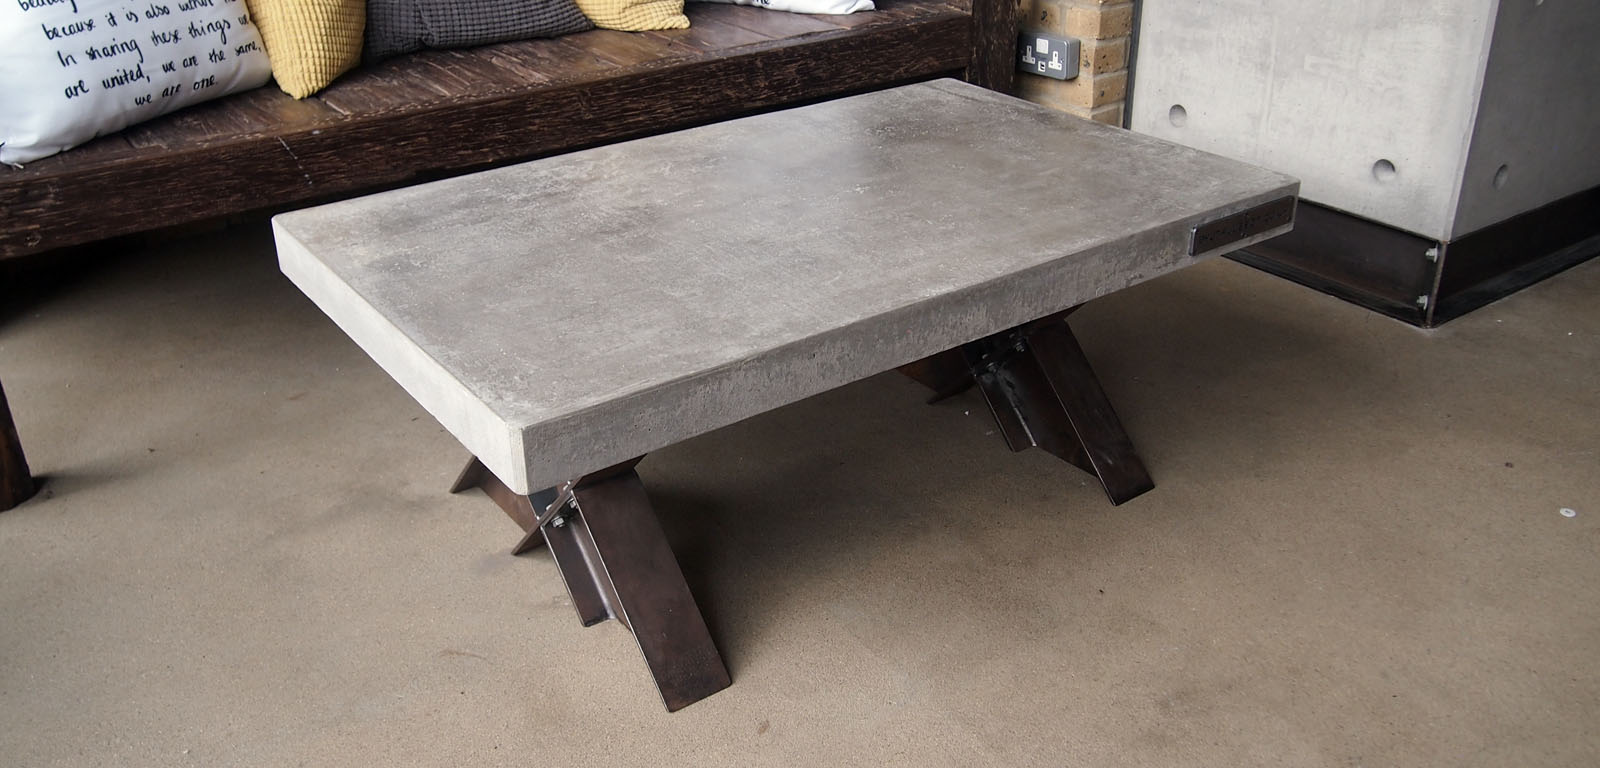 """""""Polished Concrete Coffee Table"""" Cast concrete and steel furniture"""" """"By Brutal Design"""""""